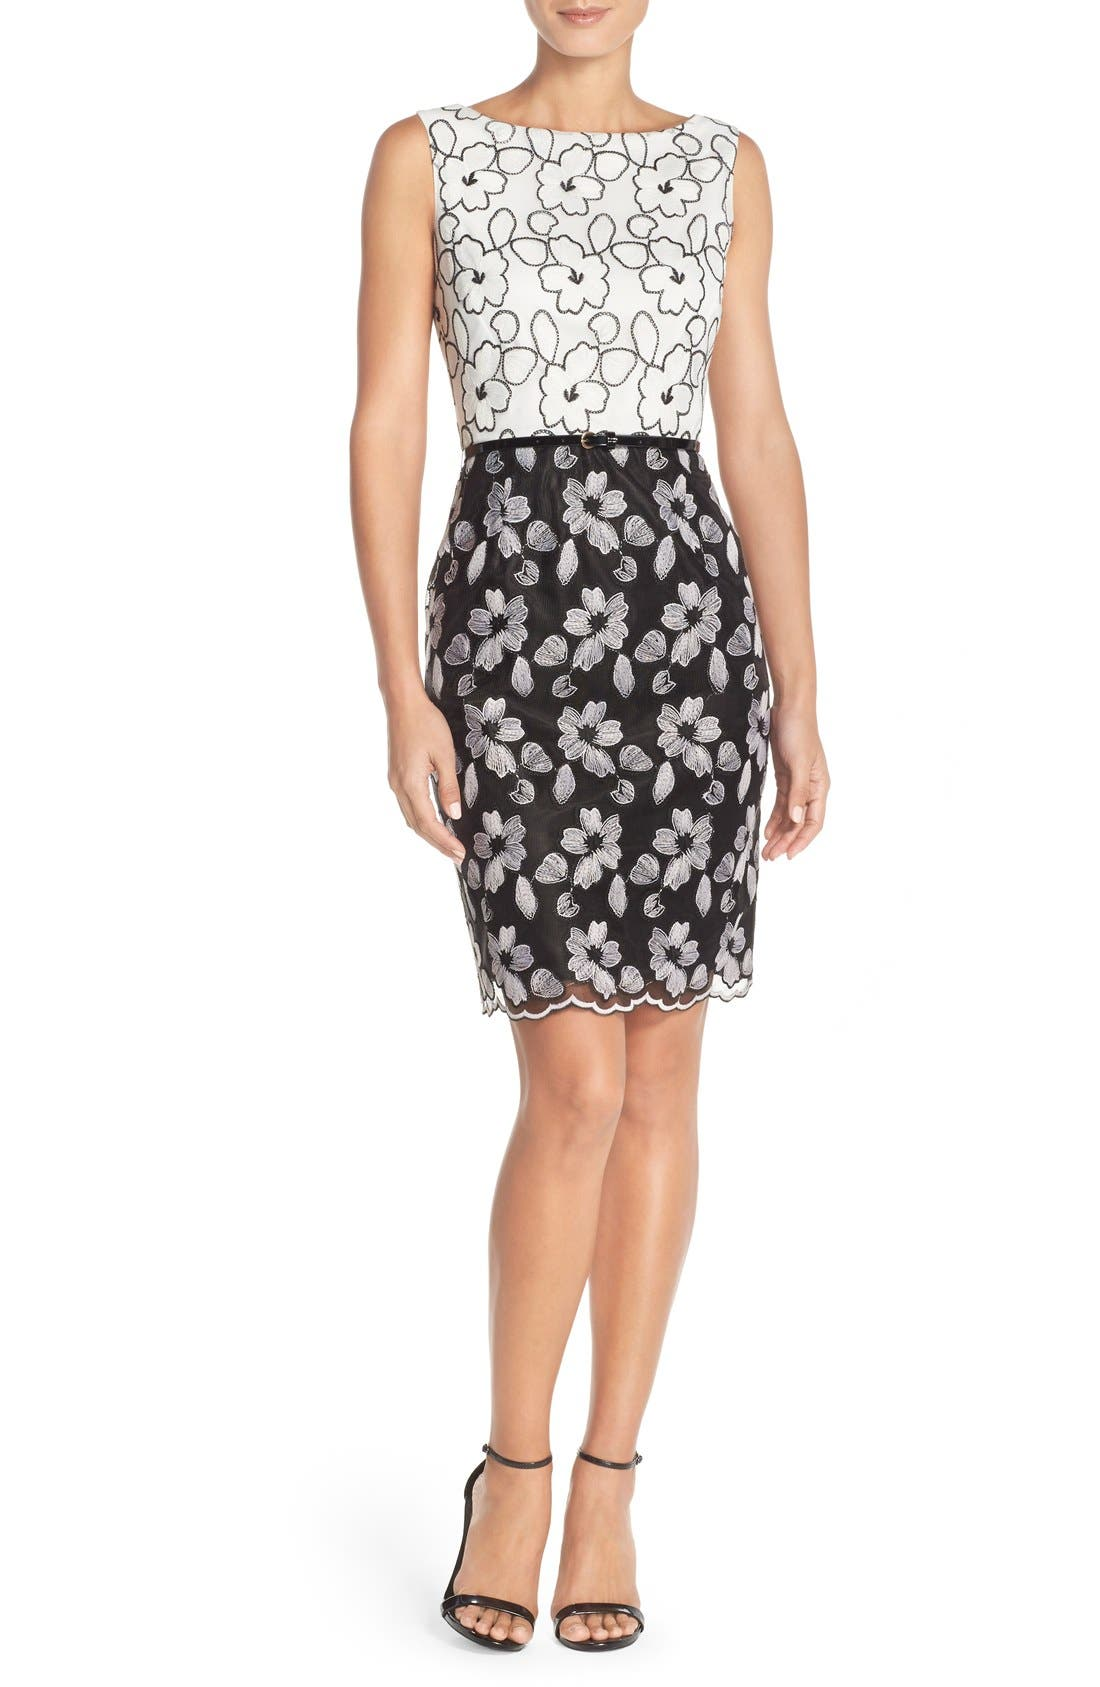 Alternate Image 1 Selected - Ellen Tracy Floral Lace Sheath Dress With Belt